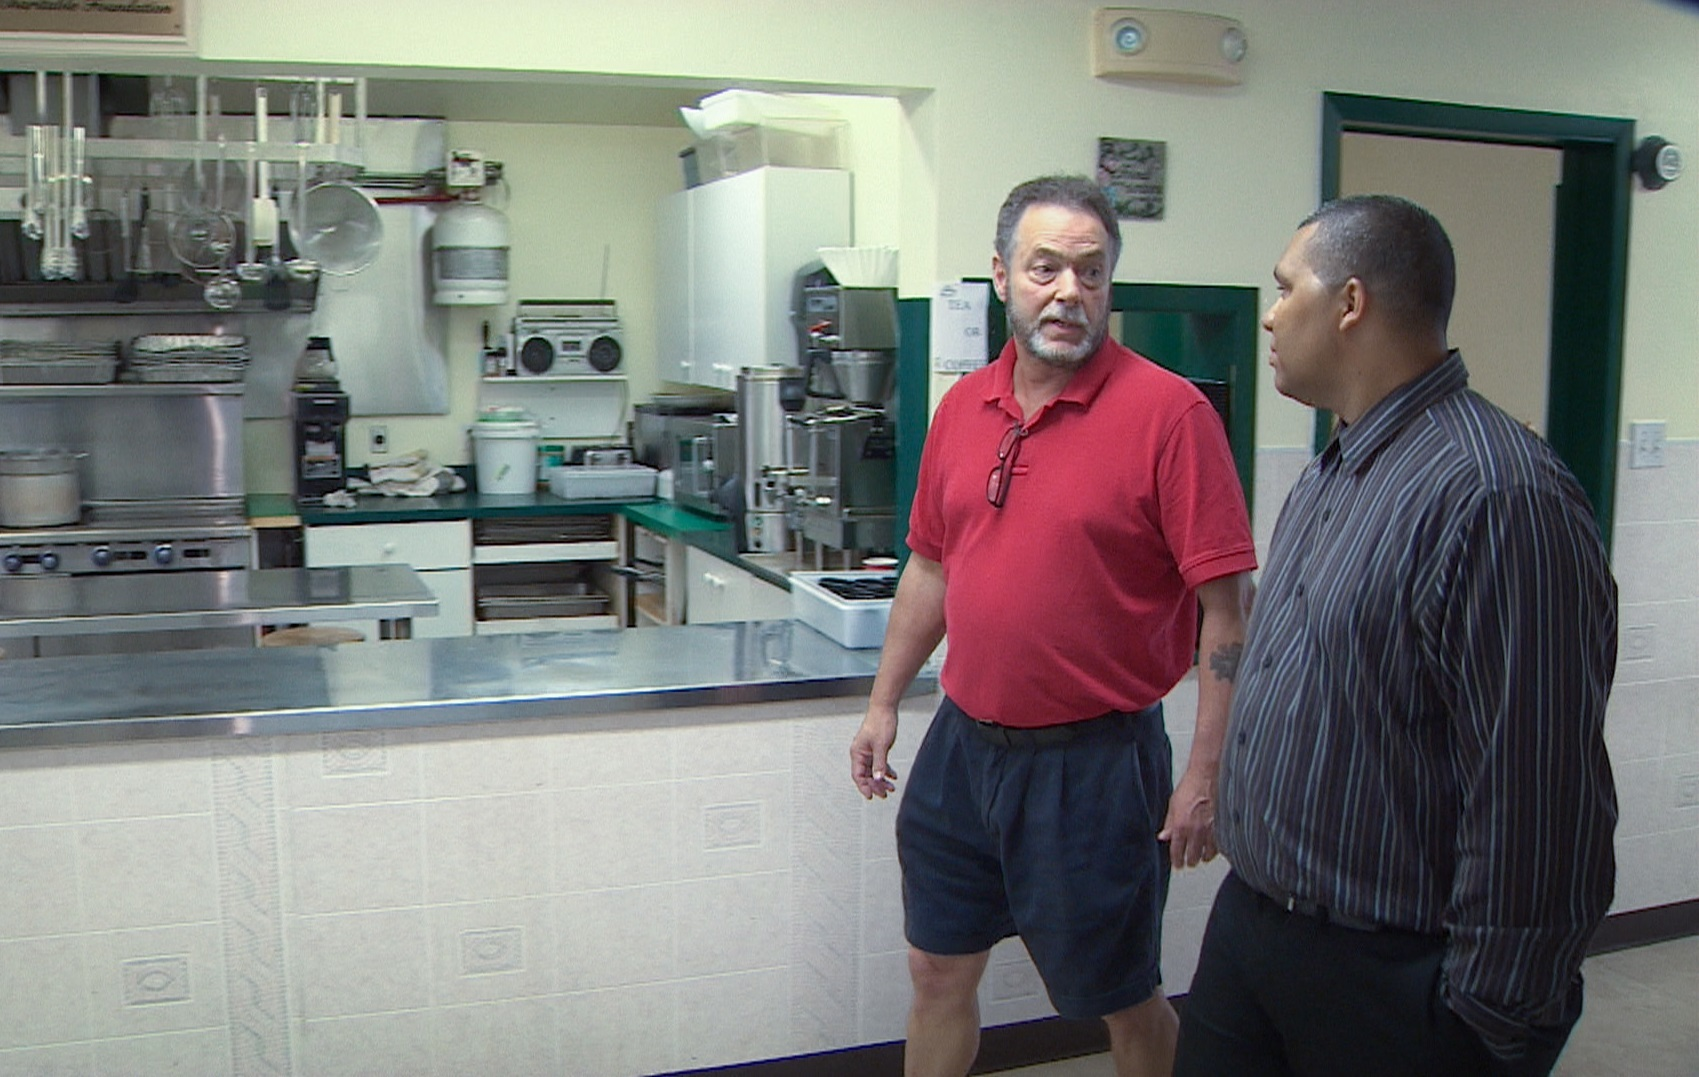 Hope Cottage executive director Joe Morgan, left, walks with Arsenault past the charity's kitchen. (Robert Short/CBC)